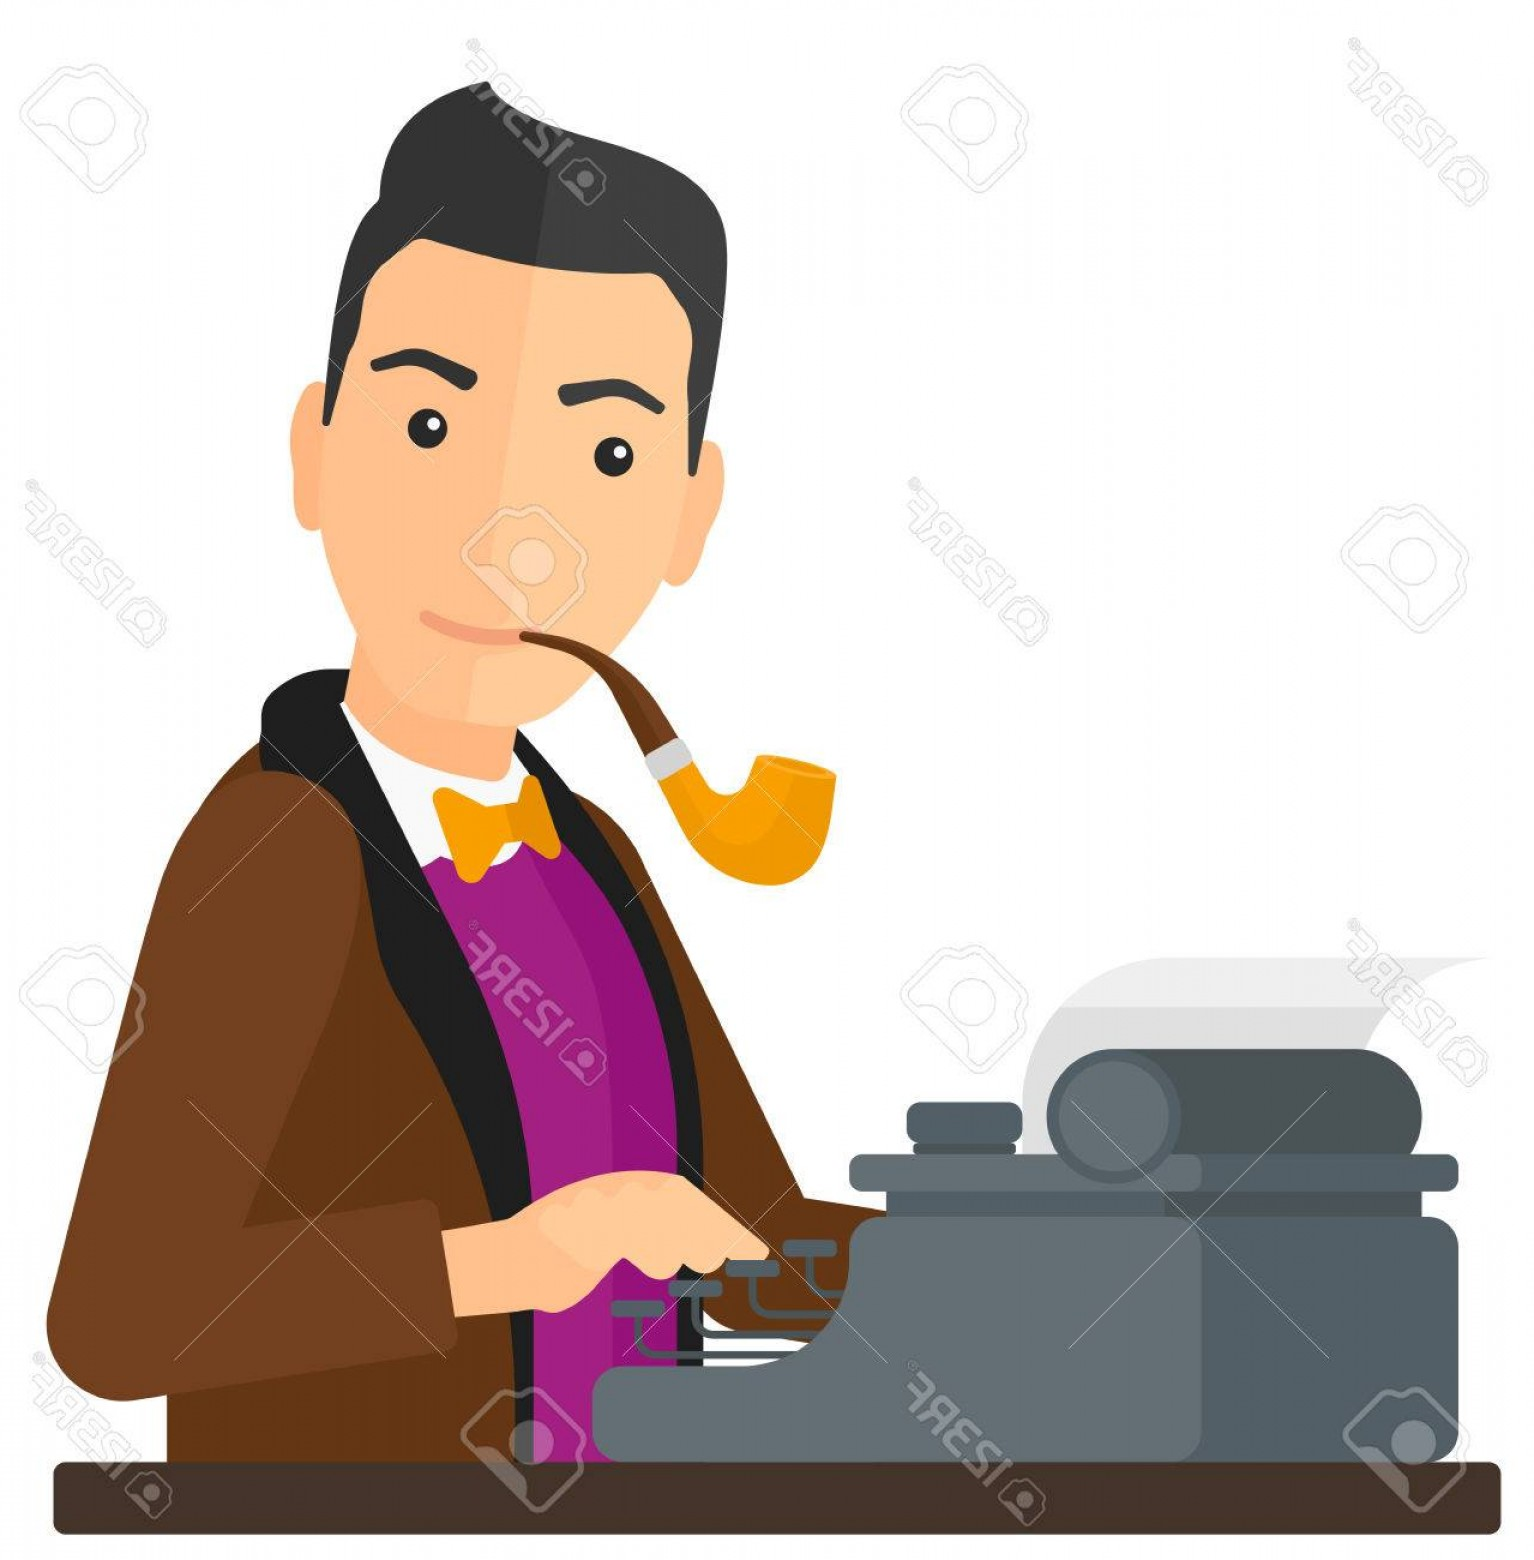 Ways To Write Vector BA: Photostock Vector A Reporter Writing An Article On His Typewriter Vector Flat Design Illustration Isolated On White Ba